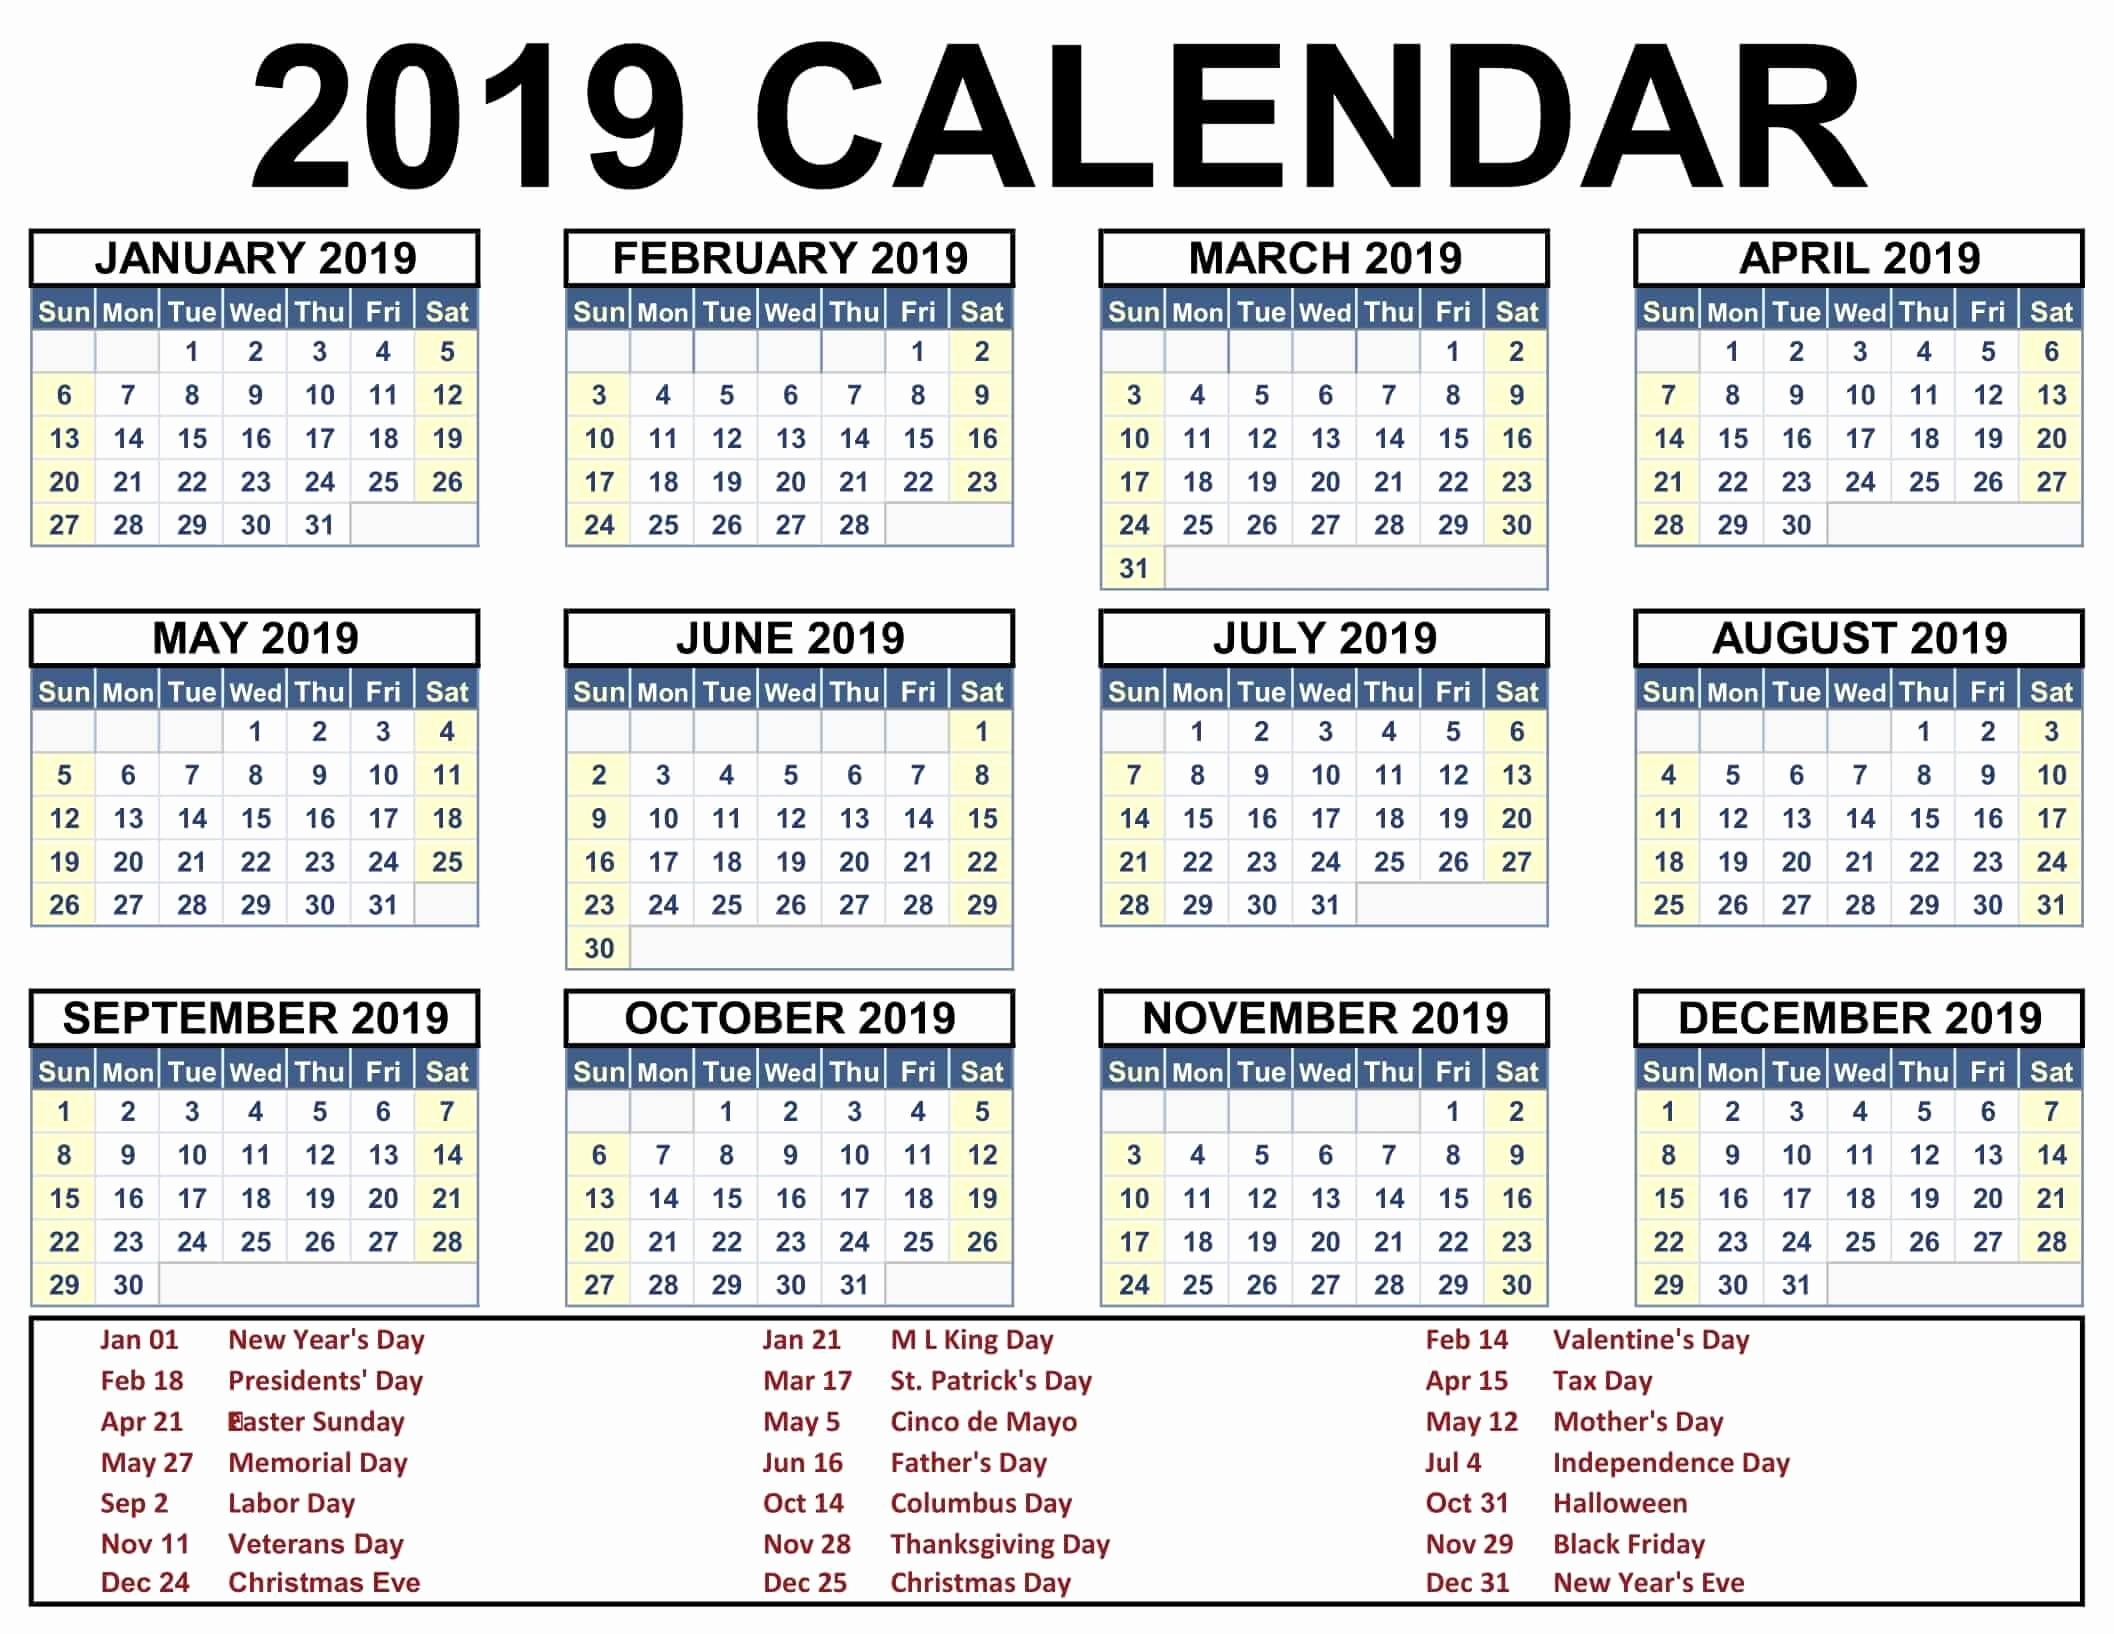 Luxury 32 Examples Hanukkah 2019 2020 Calendar | Etxettipia throughout Free Hebraic Calendar 2019 2020